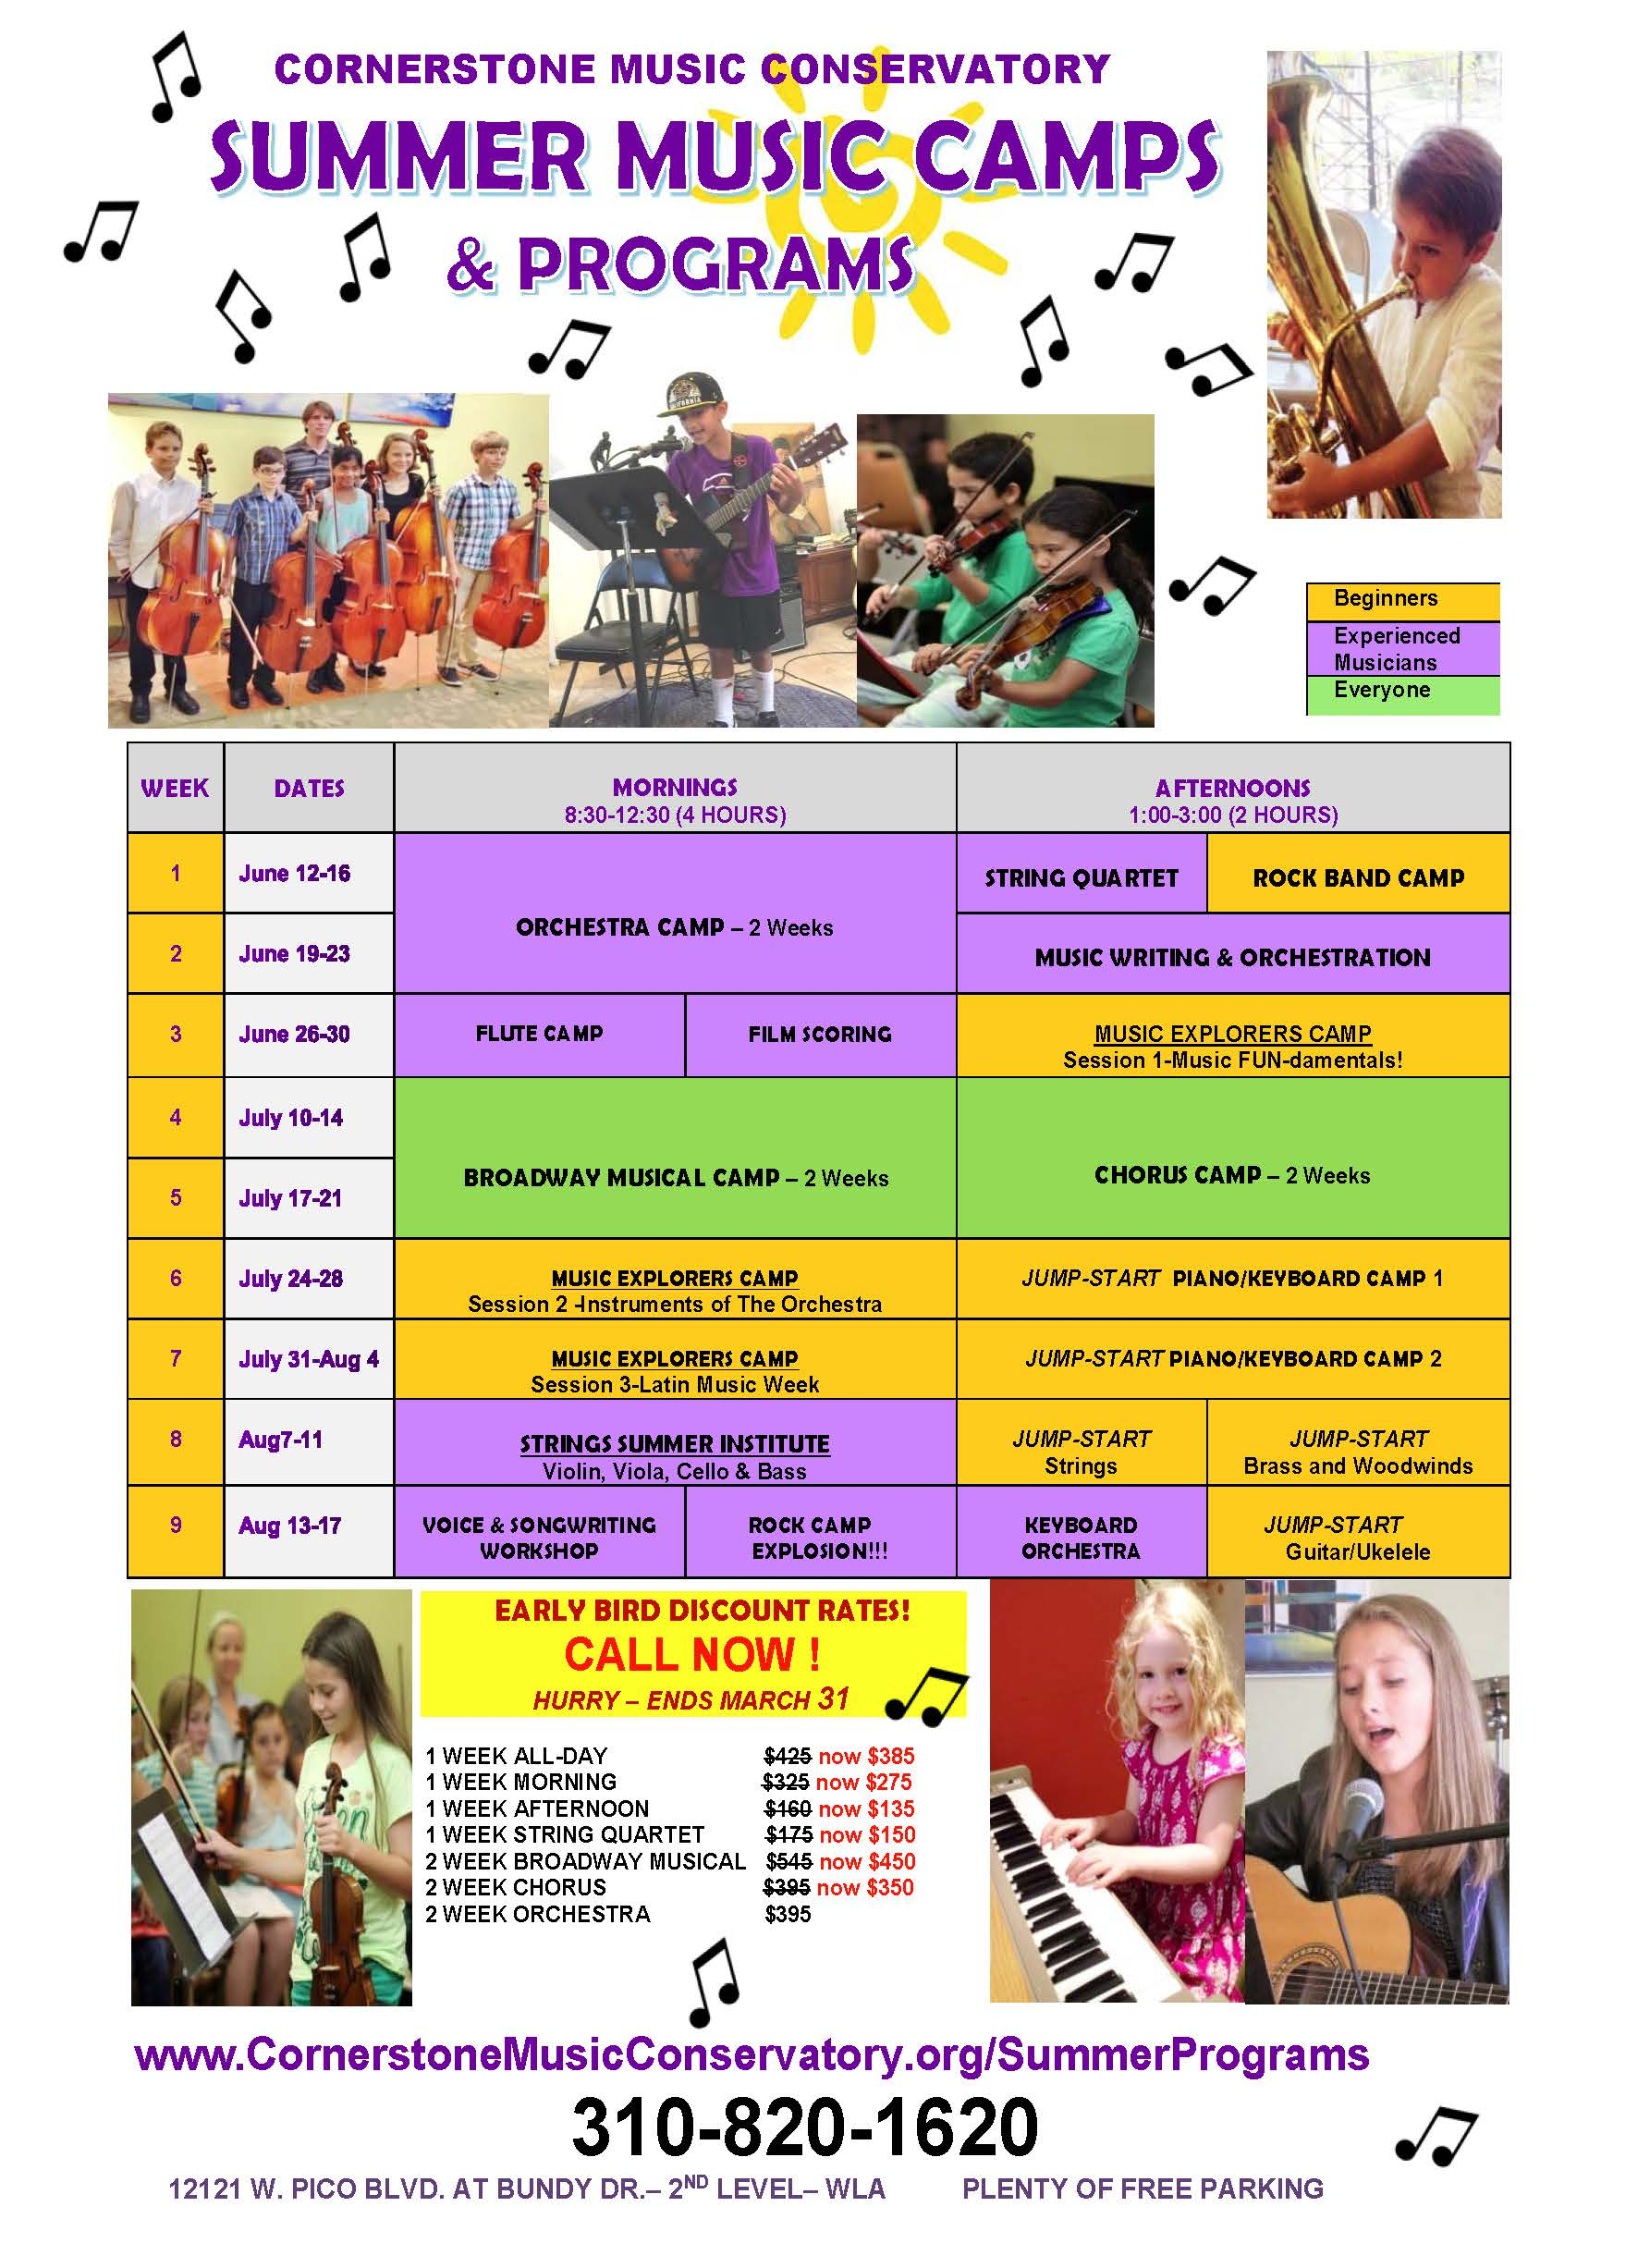 EARLY BIRD Summer Music Camps 2017